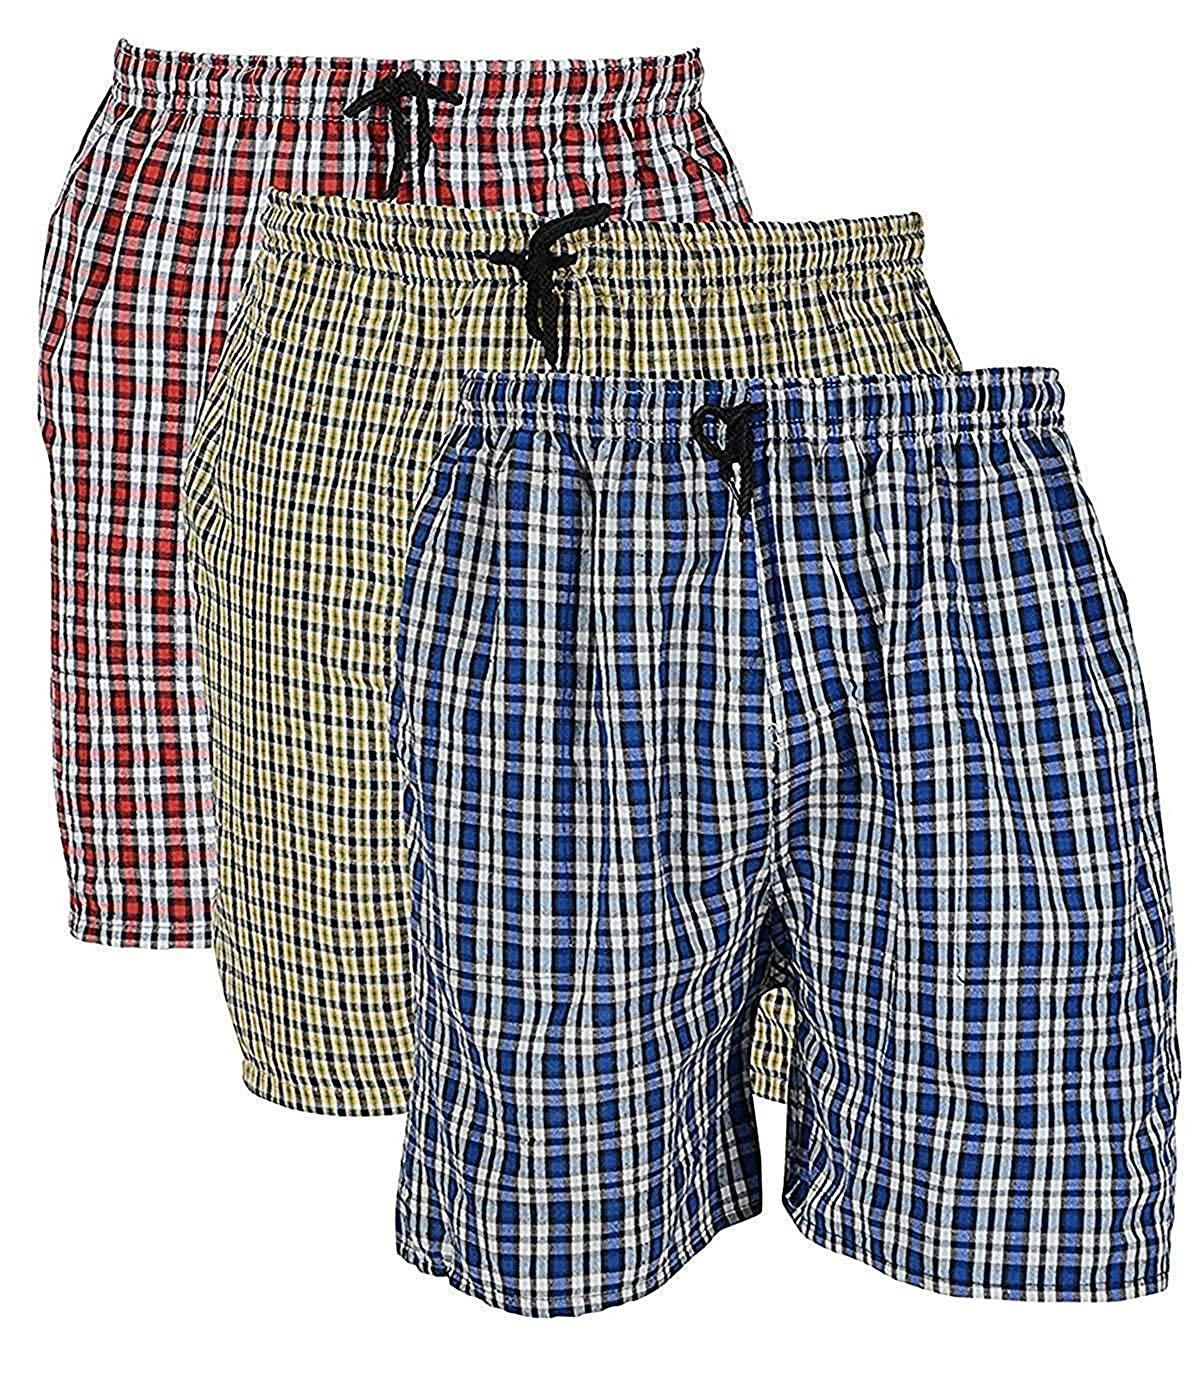 Men's Cotton Boxers (Free Size) Pack of 3